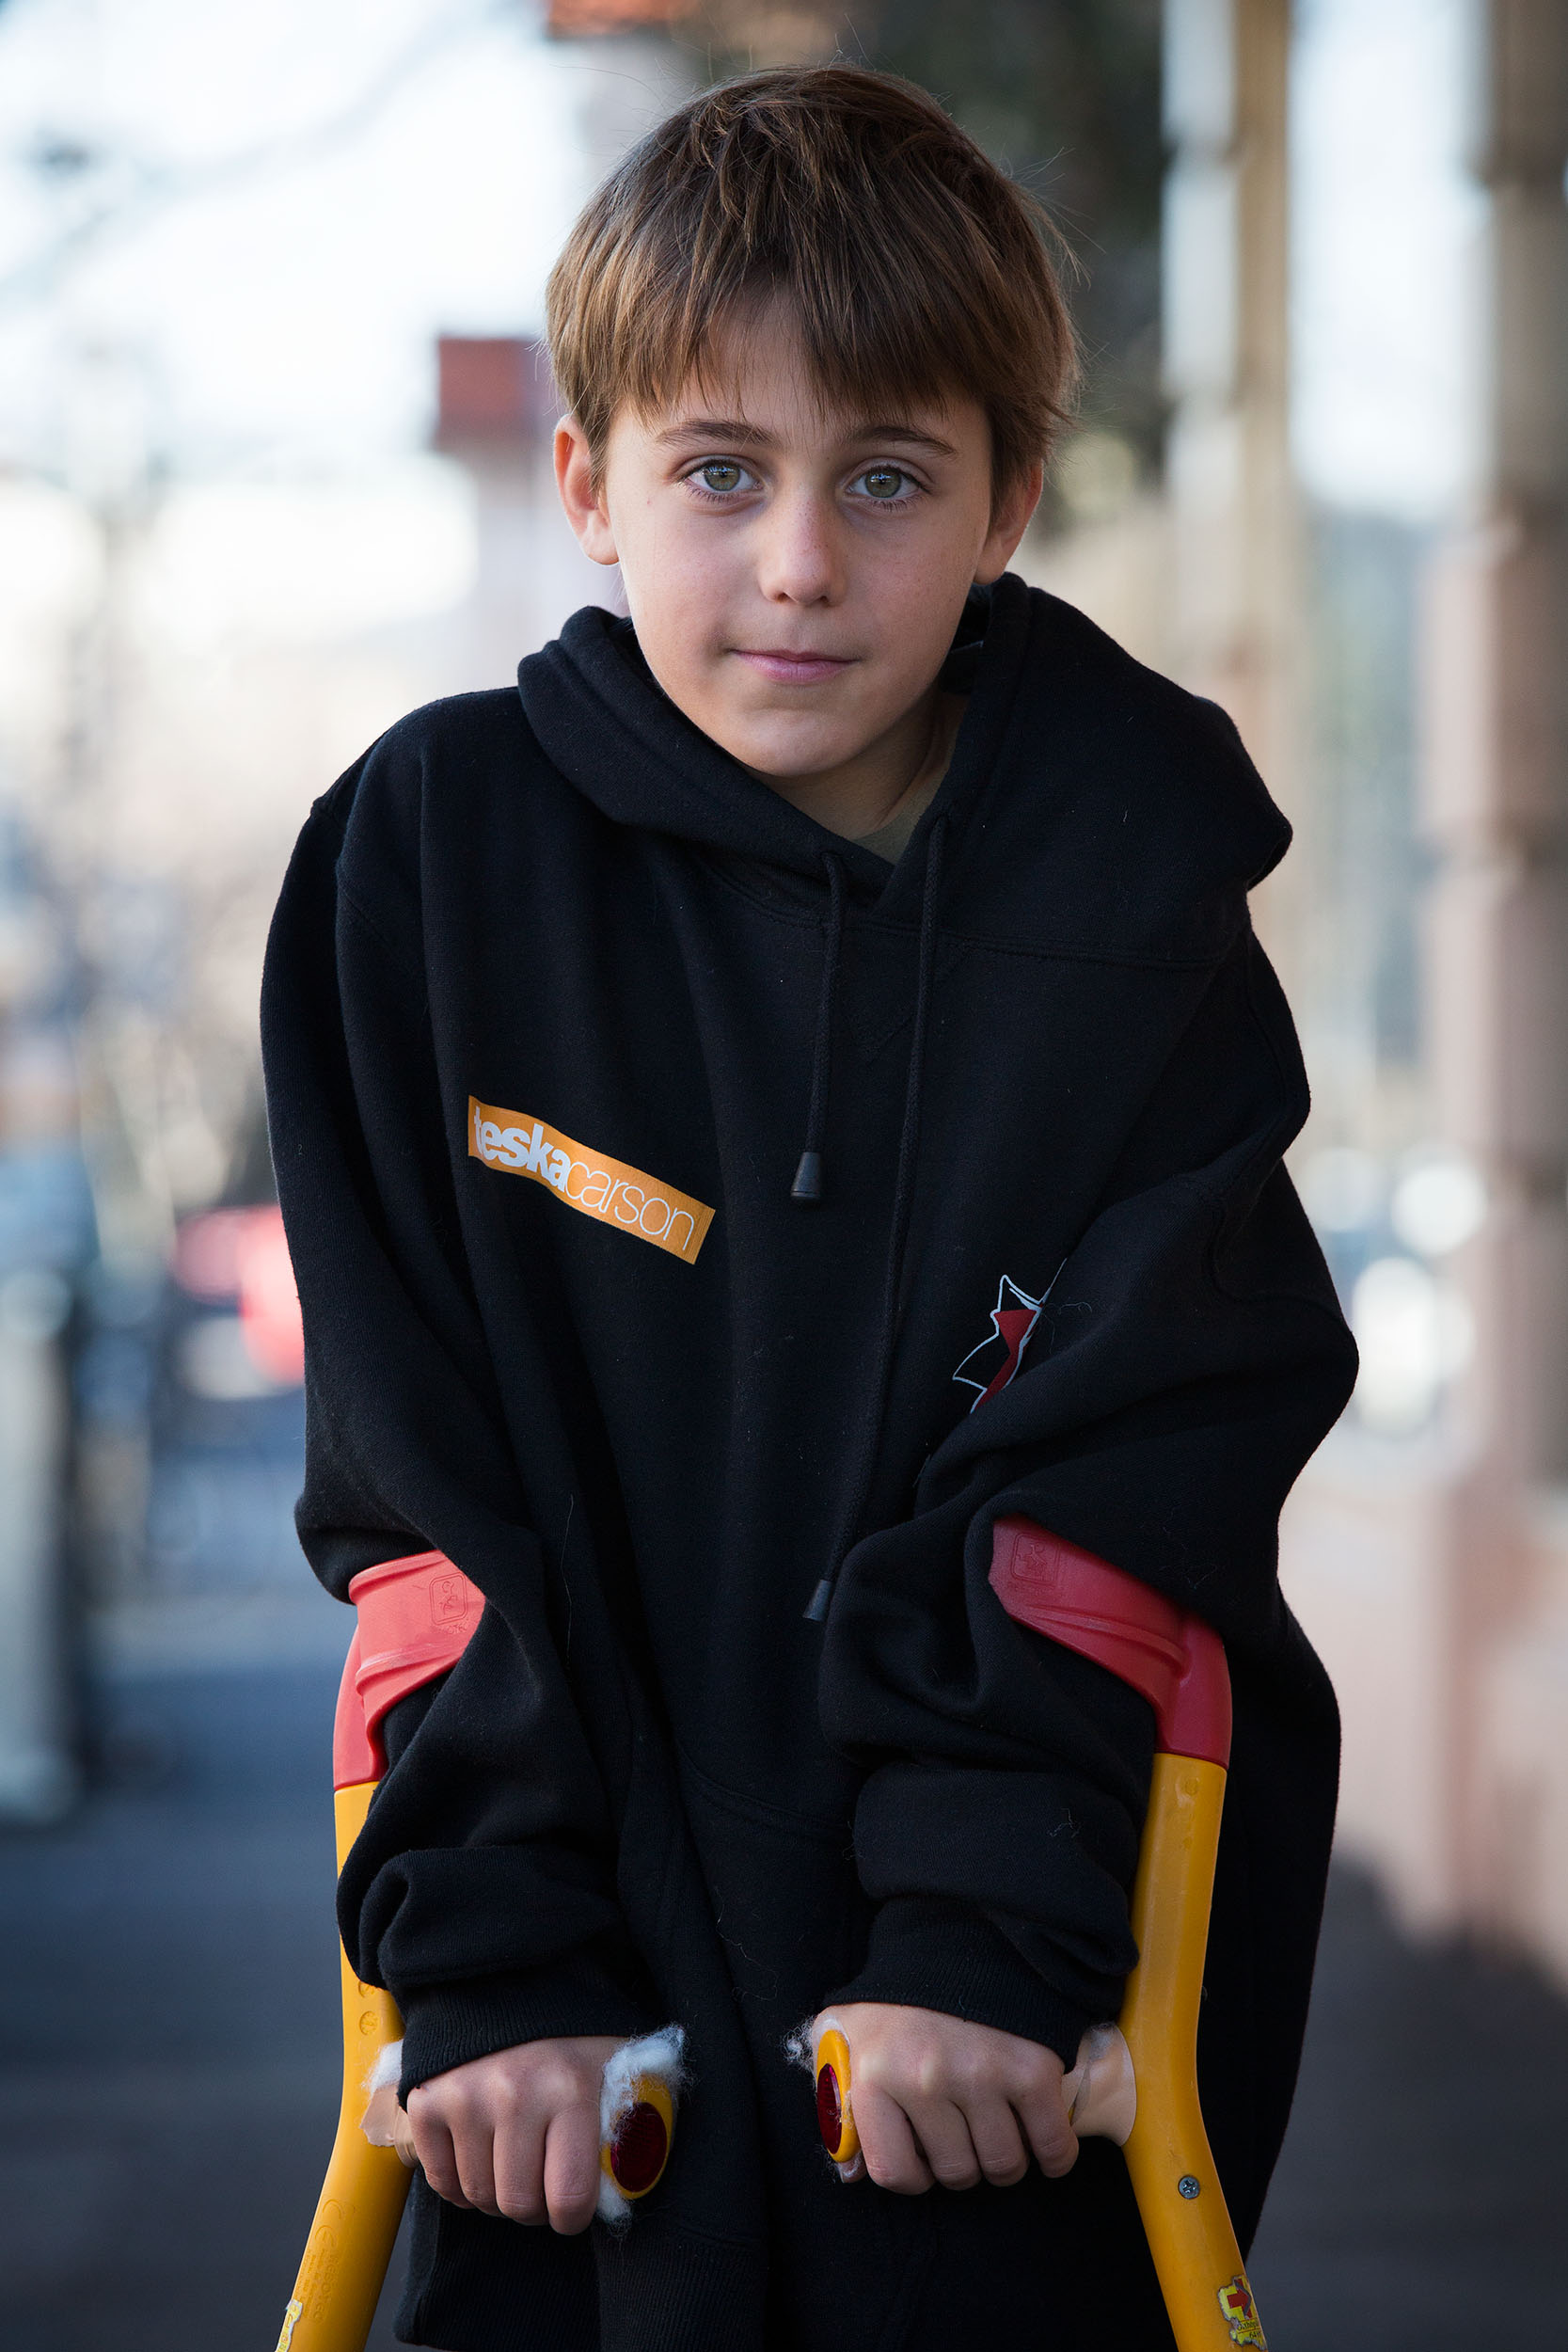 Week 31: Carter, St Kilda, VICNine year old Carter, waiting for his sister to finish ballet.